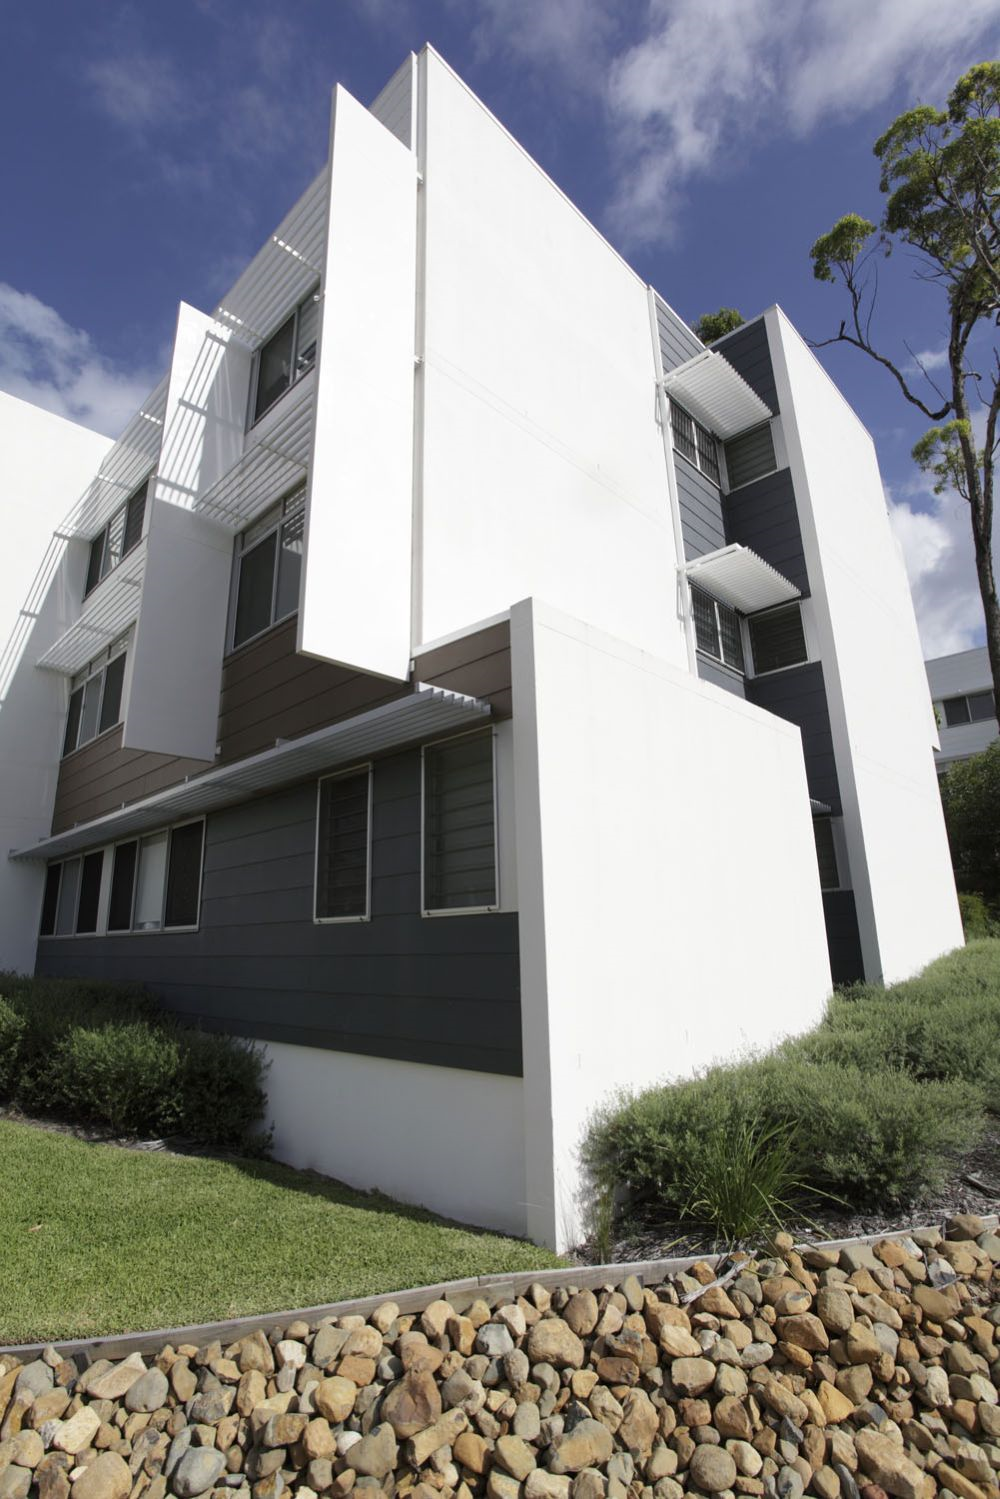 Griffith university village southport gold coast university residence best price guarantee for Griffith university gold coast swimming pool